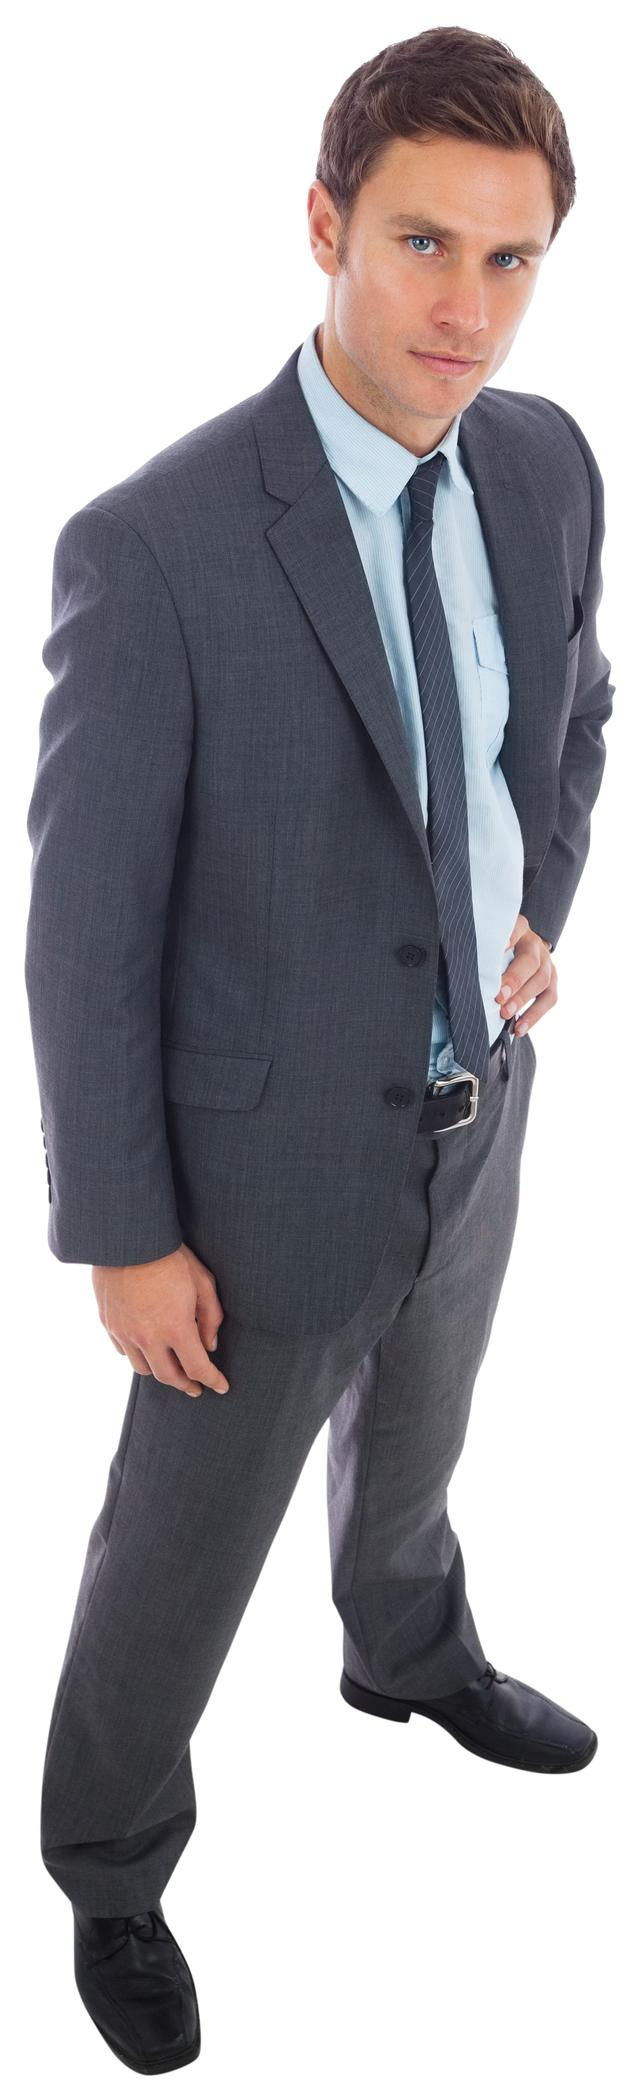 """Stern businessman standing with hand on hip"" stock image"